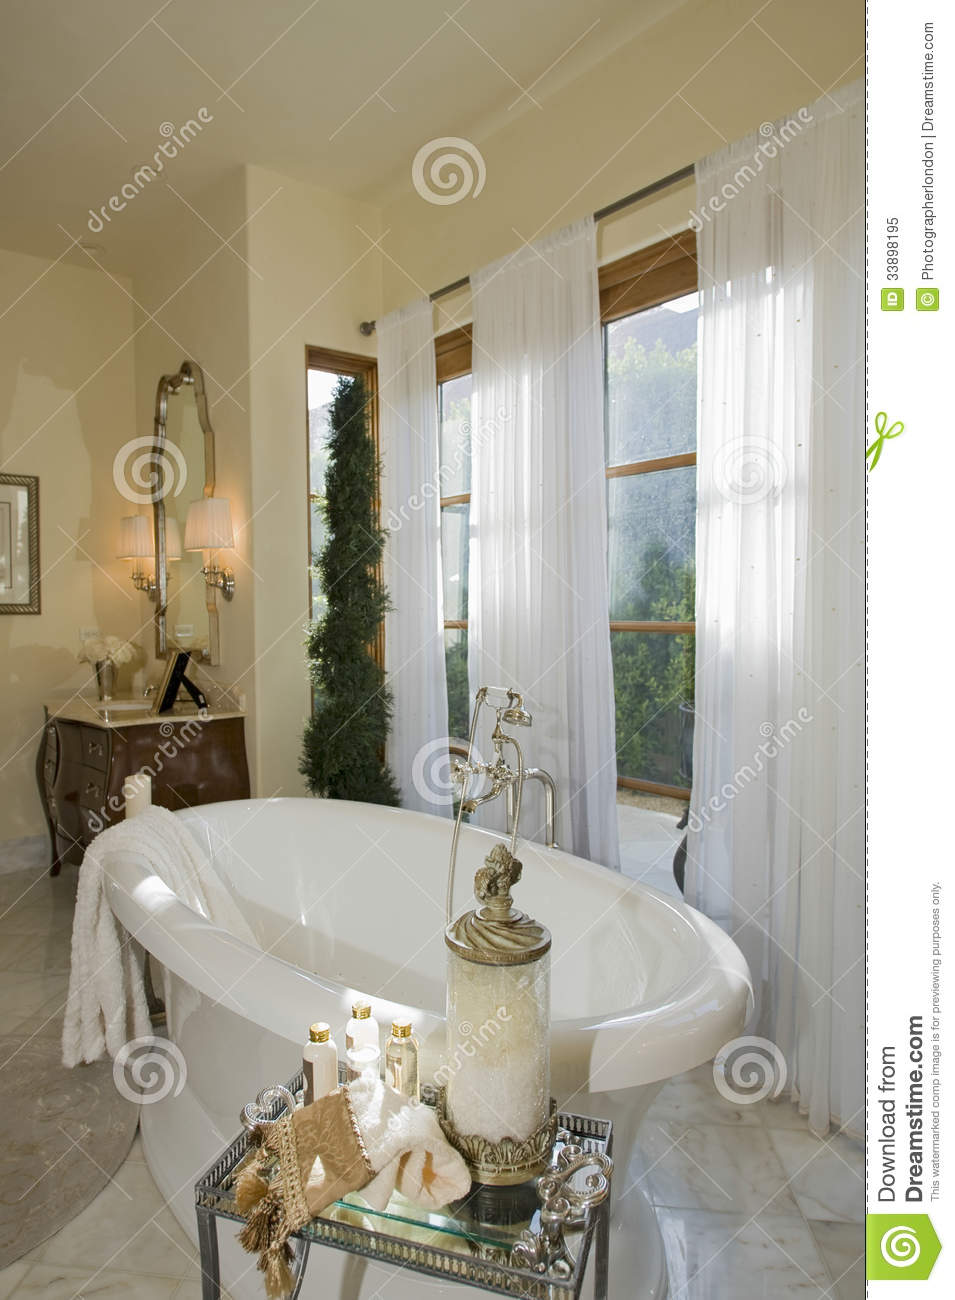 Bathroom With Toiletries Stock Image Image Of Clean